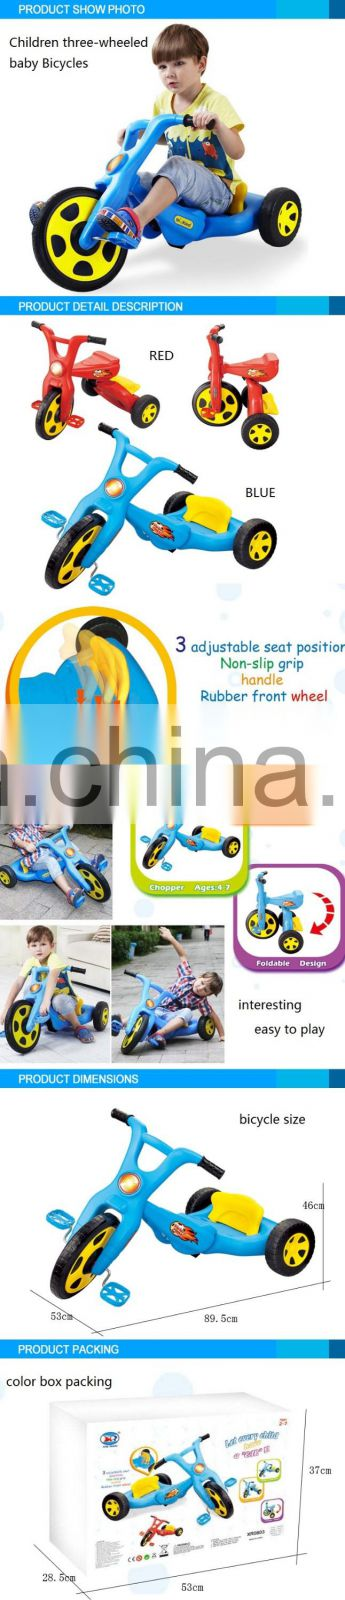 Funny Series high quality 2016 Children 3-wheeled baby bicycle fashion design